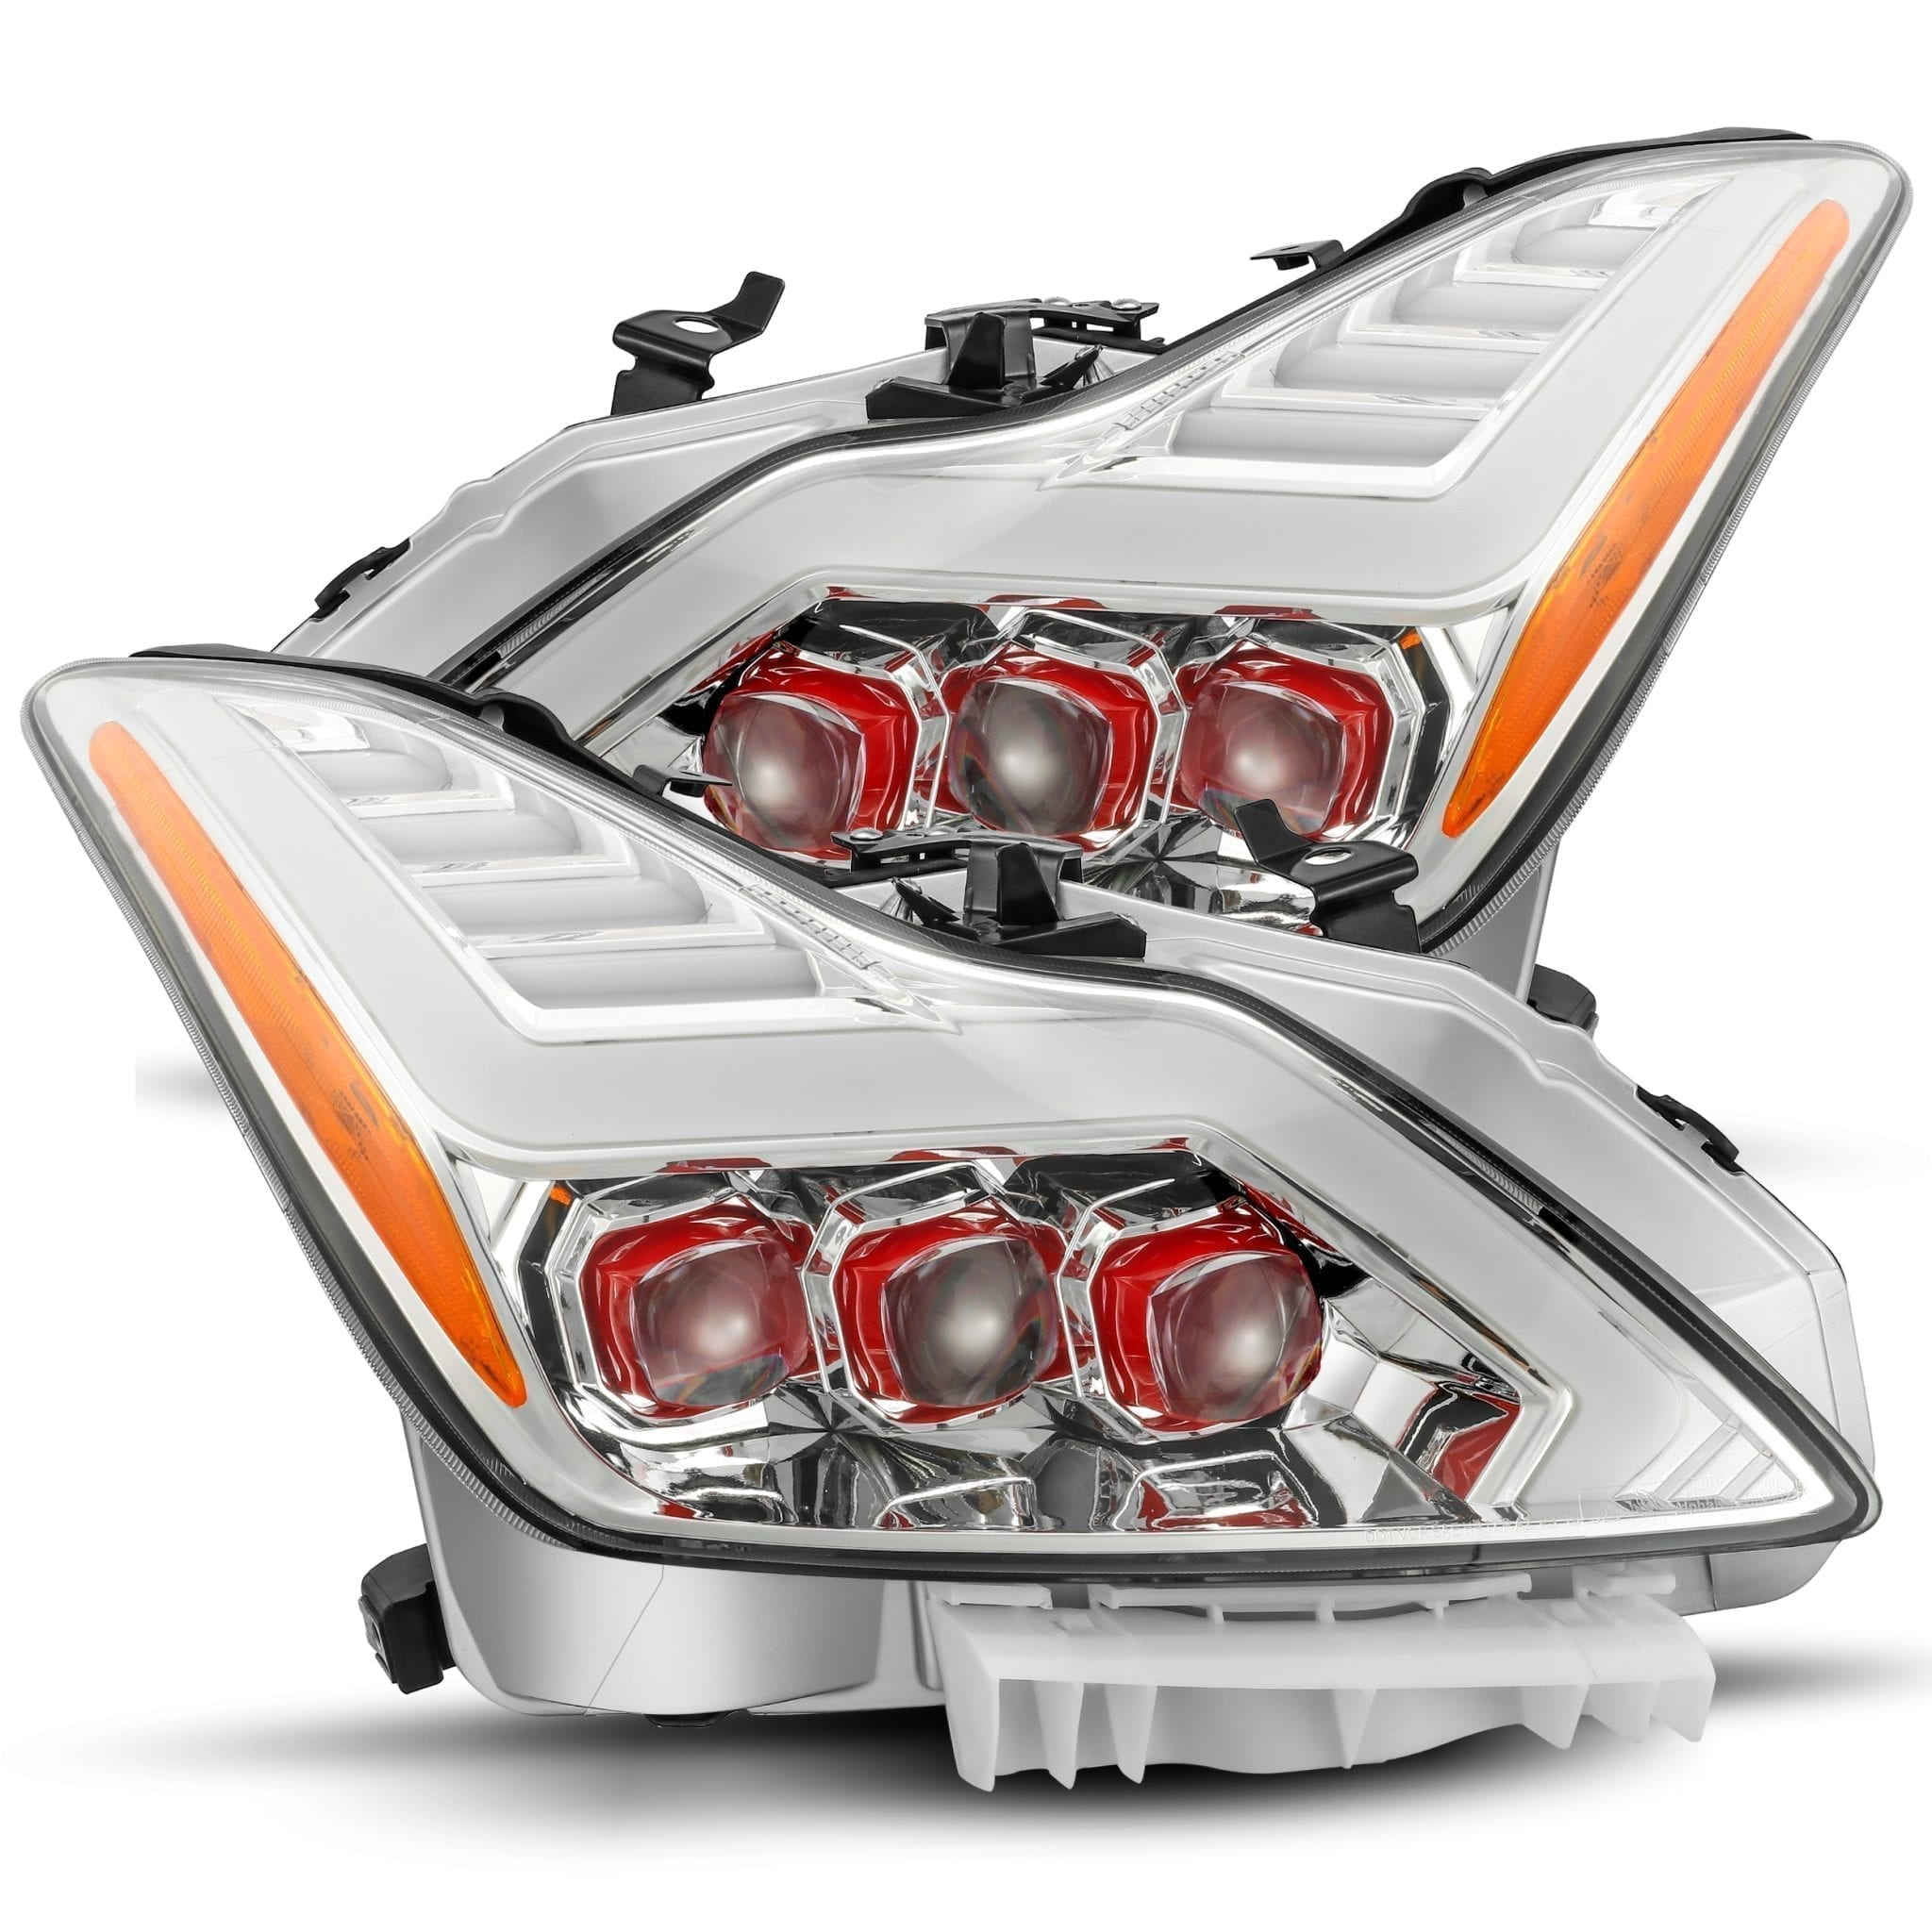 2008 2009 2010 2011 2012 2013 2014 2015 Infiniti G37 Q60 Red NOVA Full LED Projector Headlights Chrome